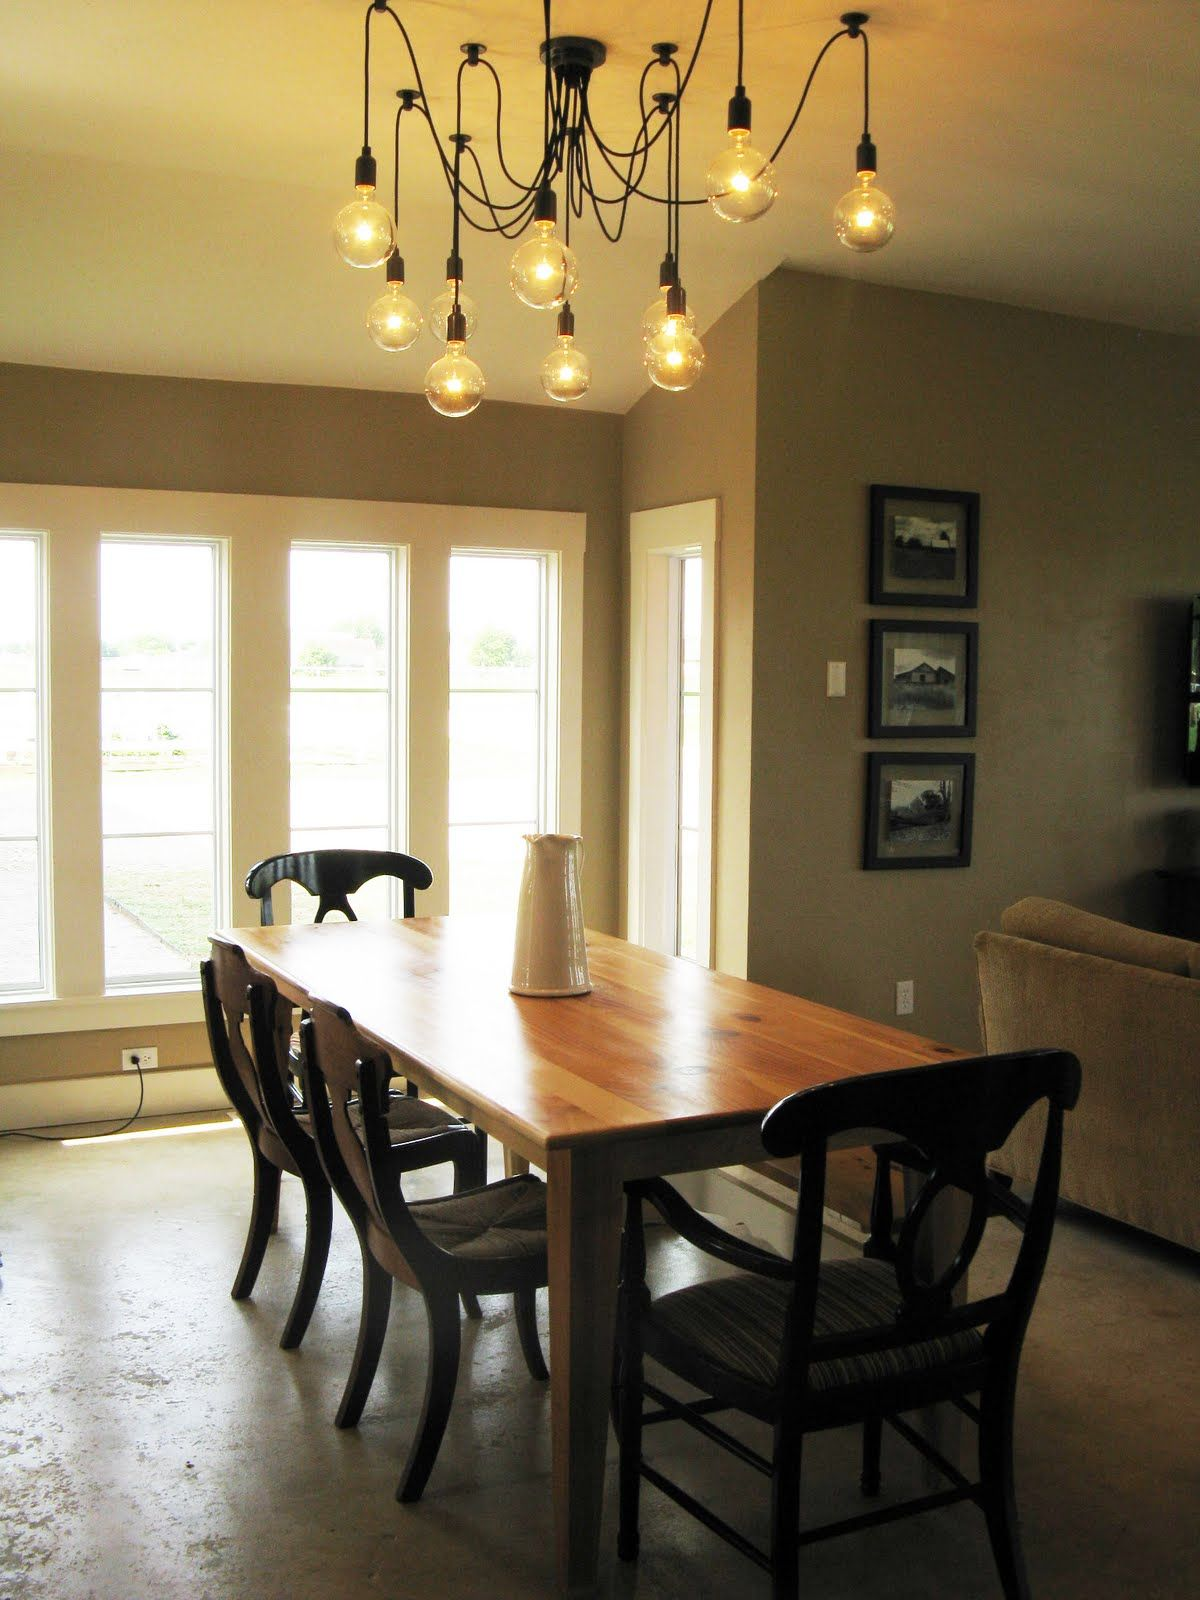 Dinning Room Table Light Fixture Favorite Farmhouse Feature Edison Chandelier Dining Room Ceiling Lights Dining Room Chandelier Beautiful Dining Rooms